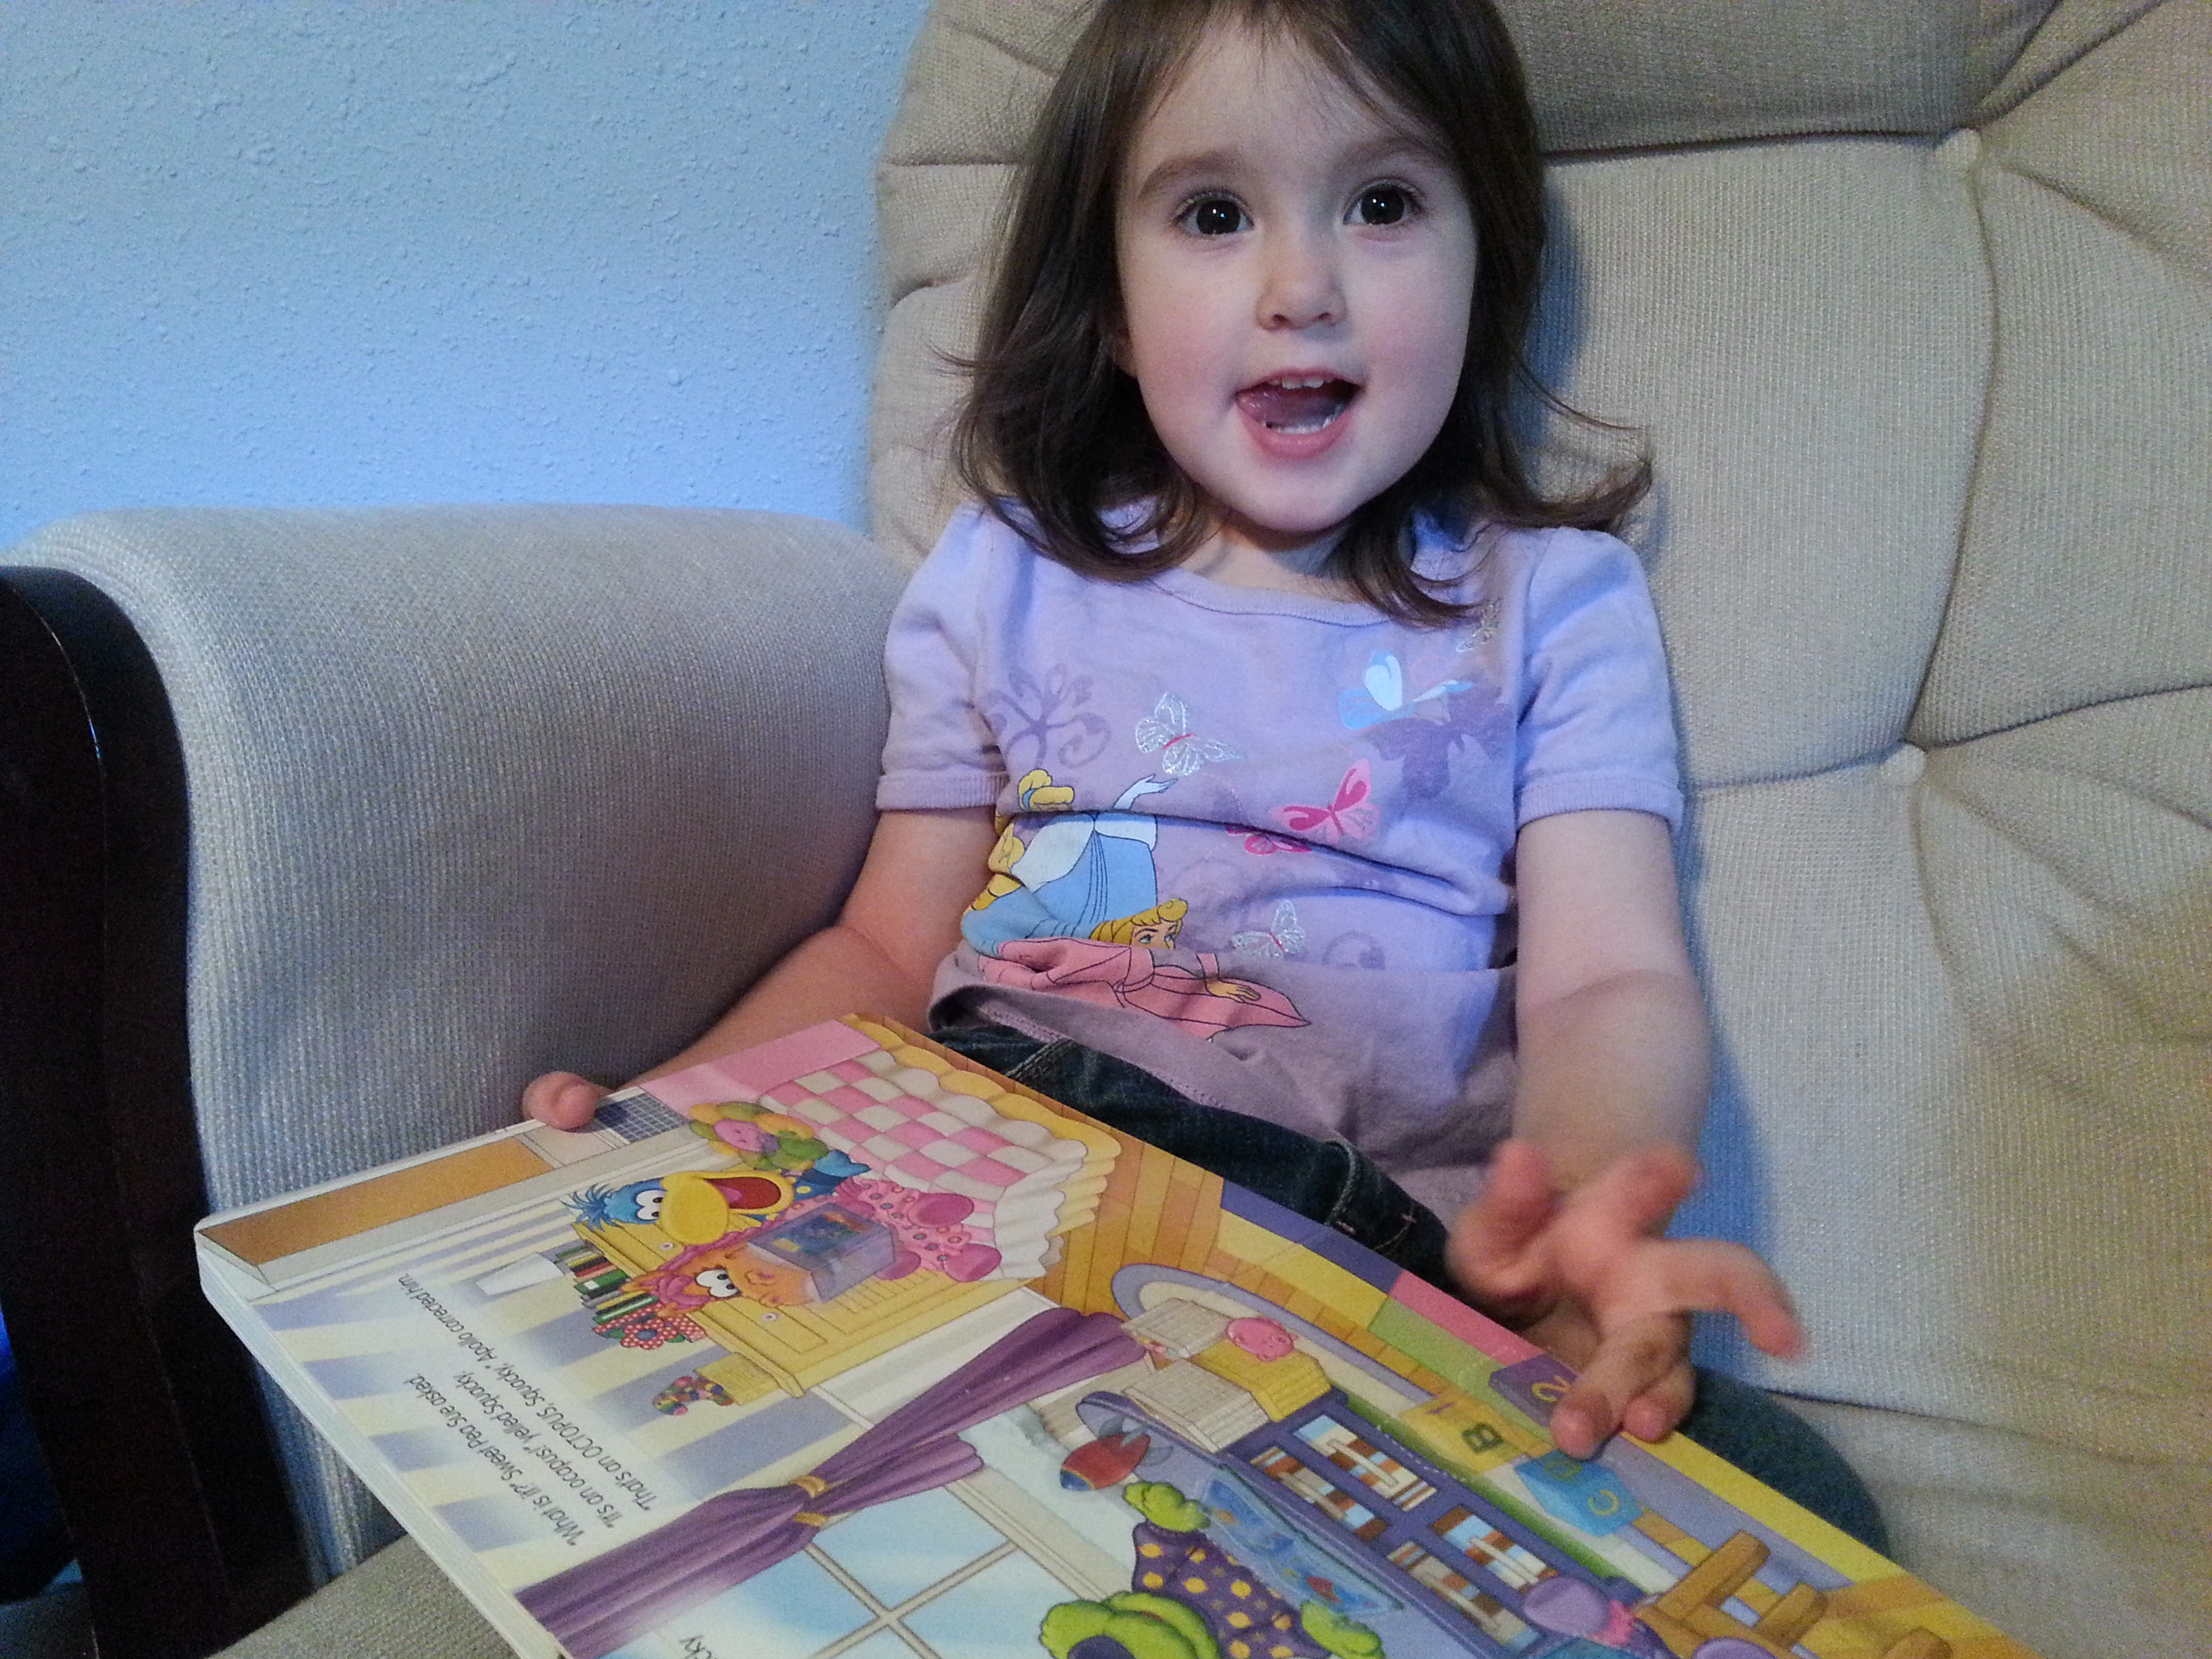 toddler girl sitting in chair with book